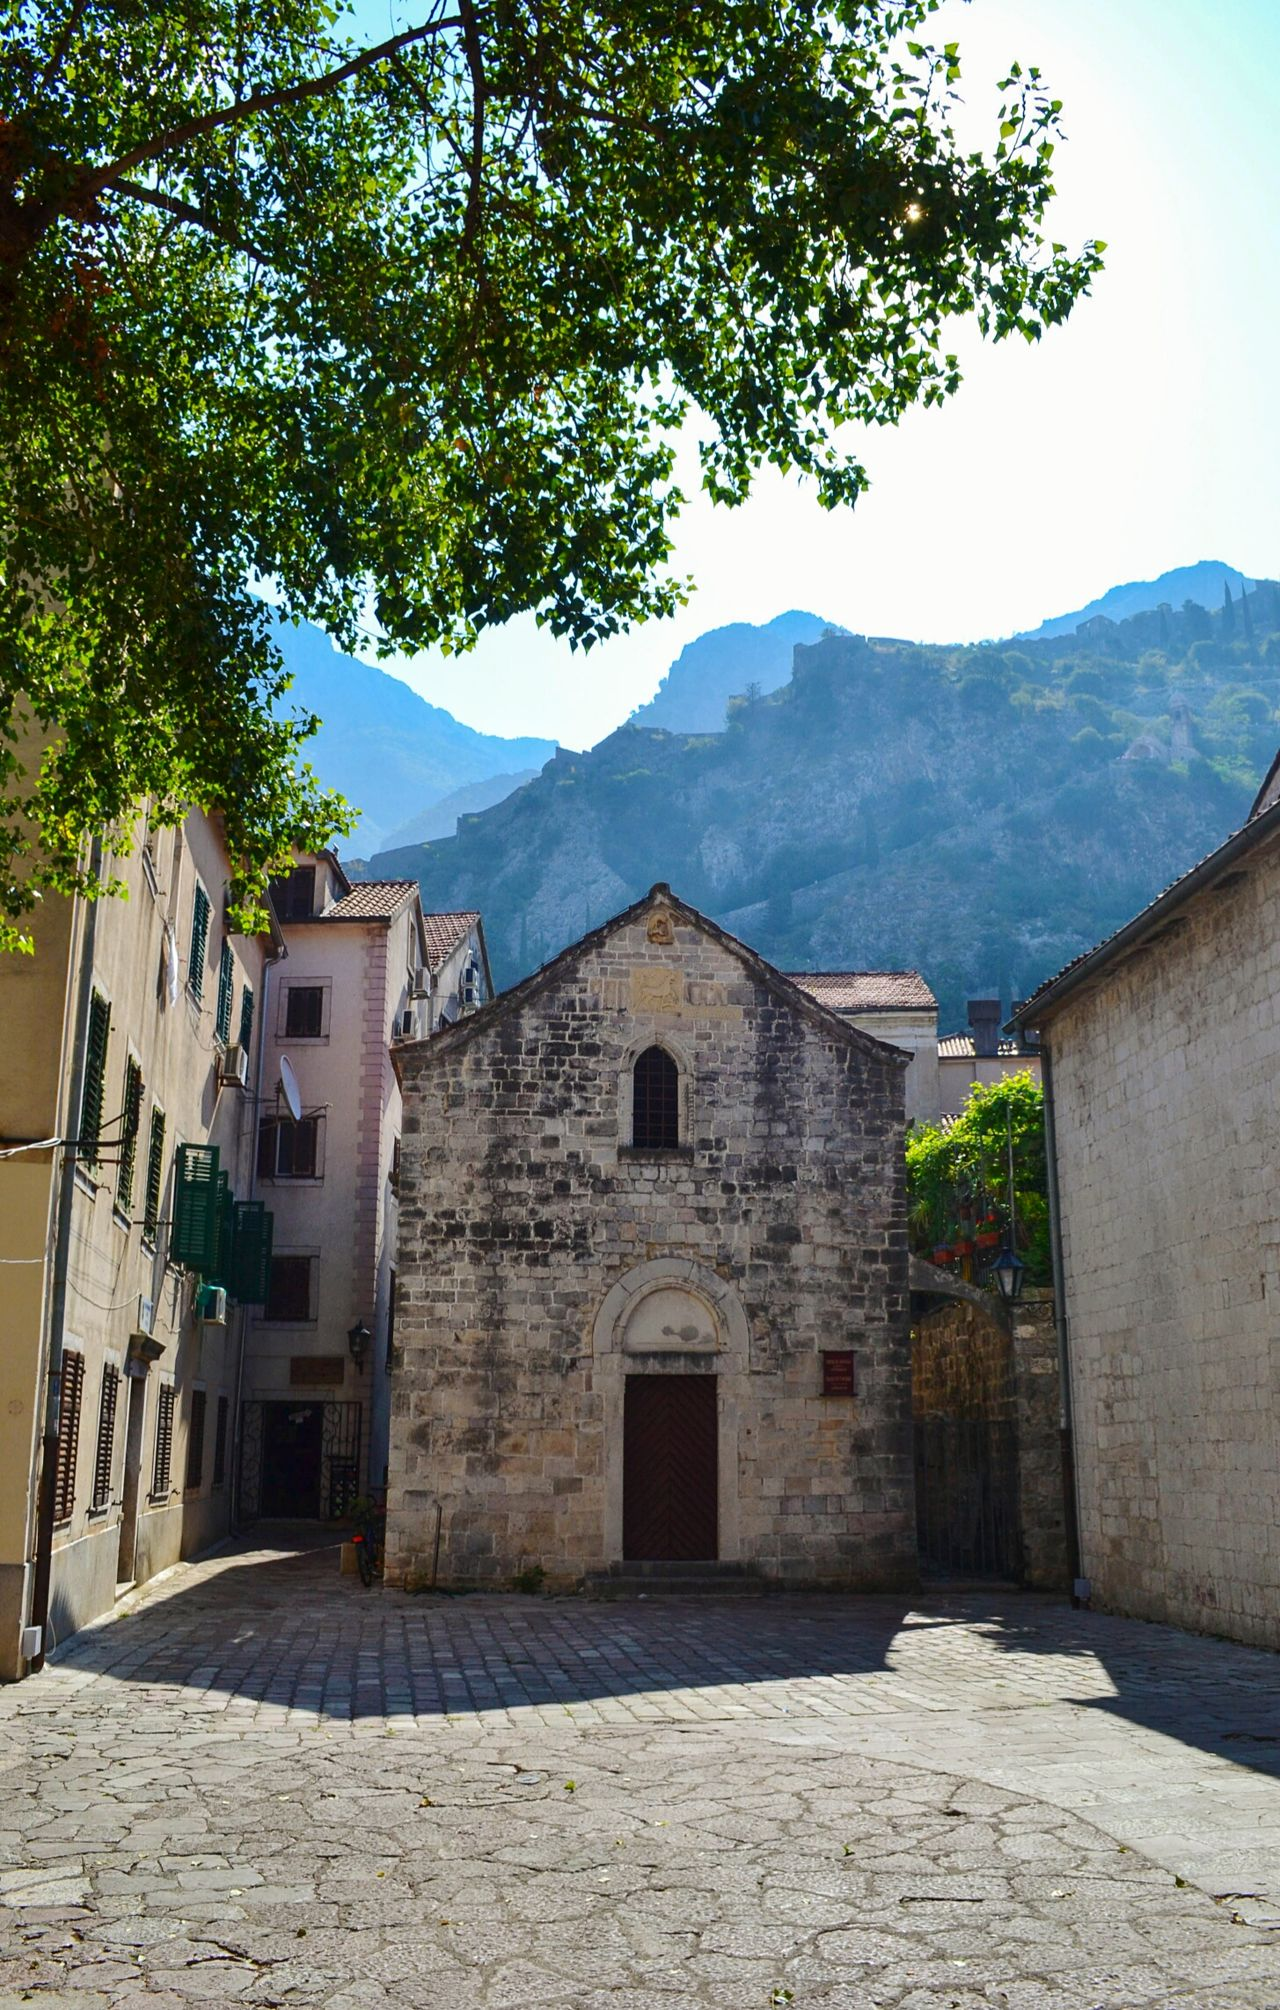 Little church Kotor Cattaro Montenegro Architecture Building Exterior Built Structure History Travel Destinations Tradition Tree Medieval Outdoors Mountains Square Home Church